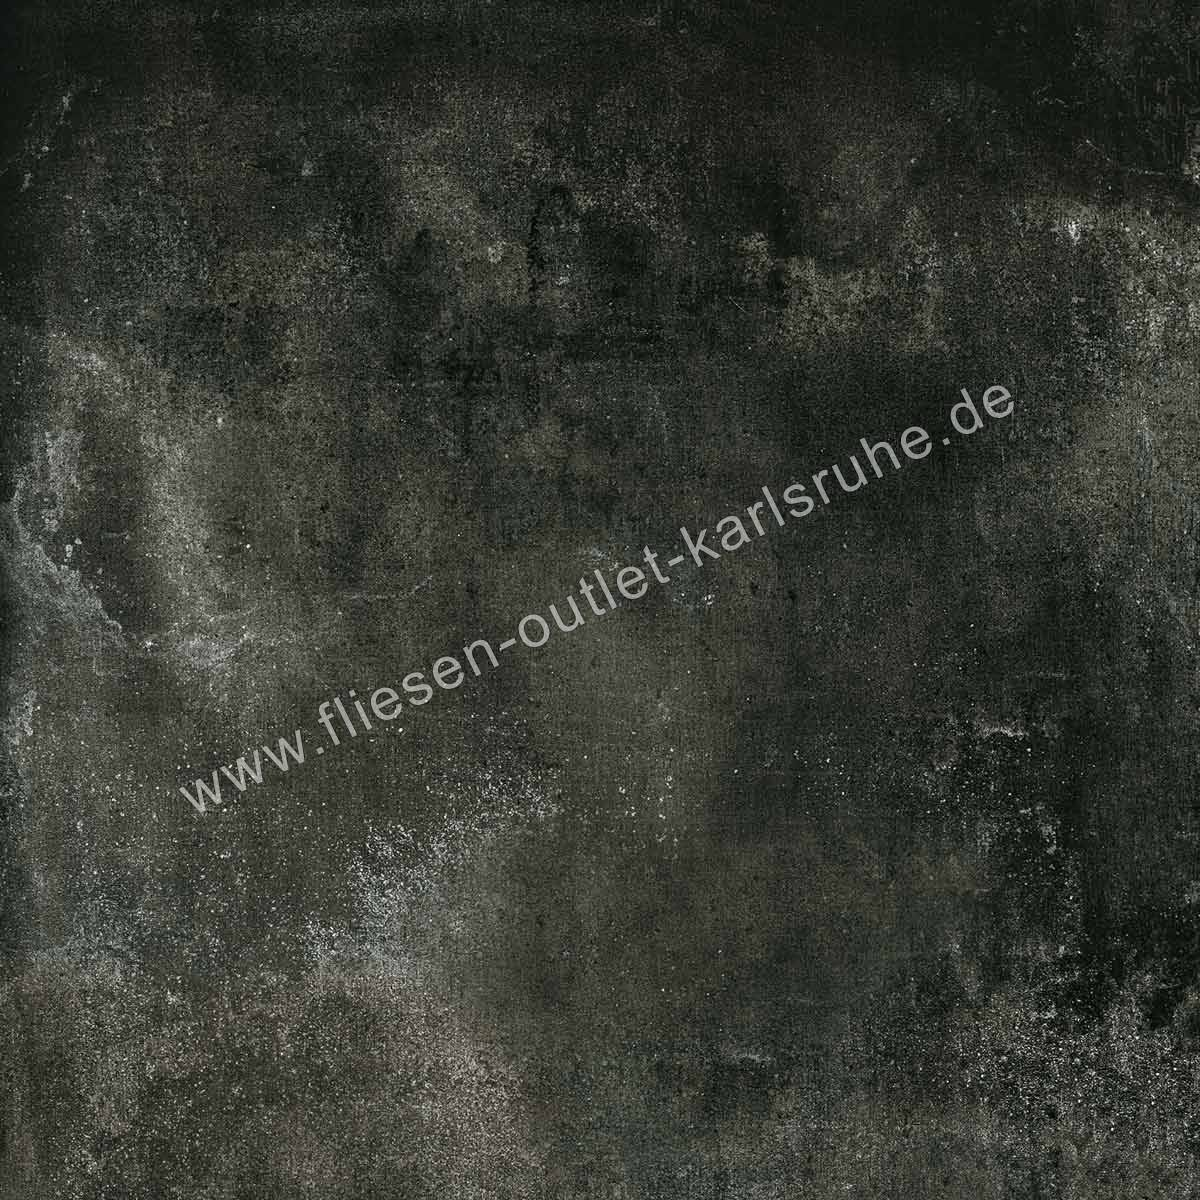 mirage of02 feinsteinzeug officine gothic 60x60x1 cm On fliesen outlet karlsruhe